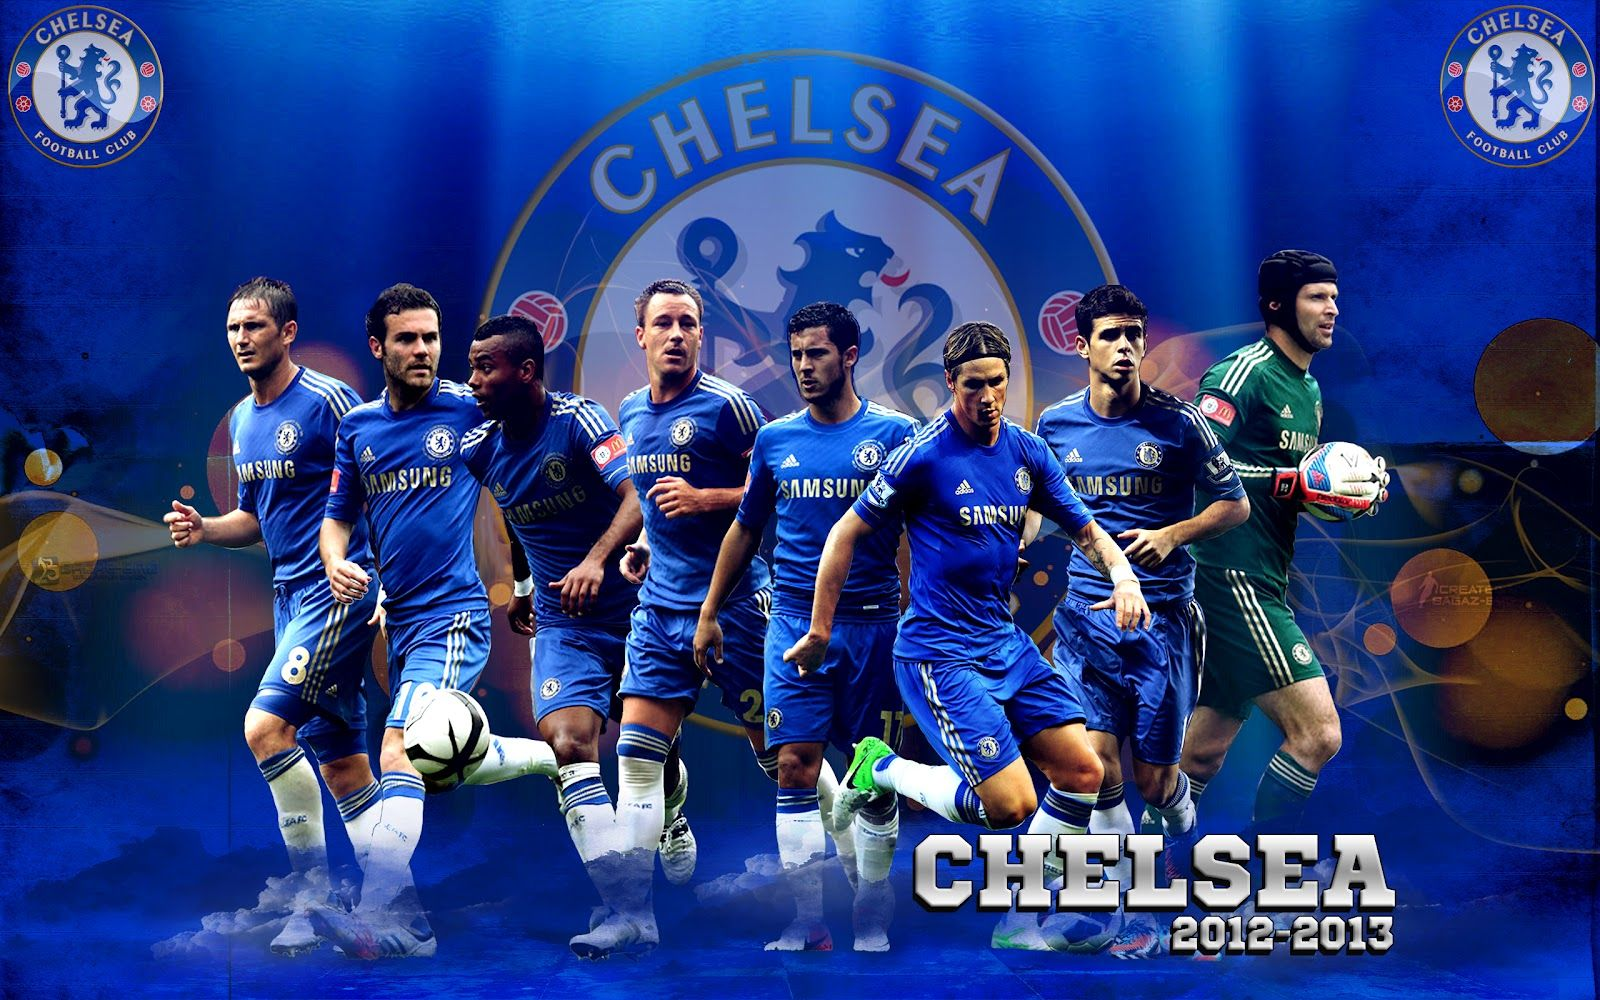 Chelsea fc the blues wallpapers voltagebd Gallery